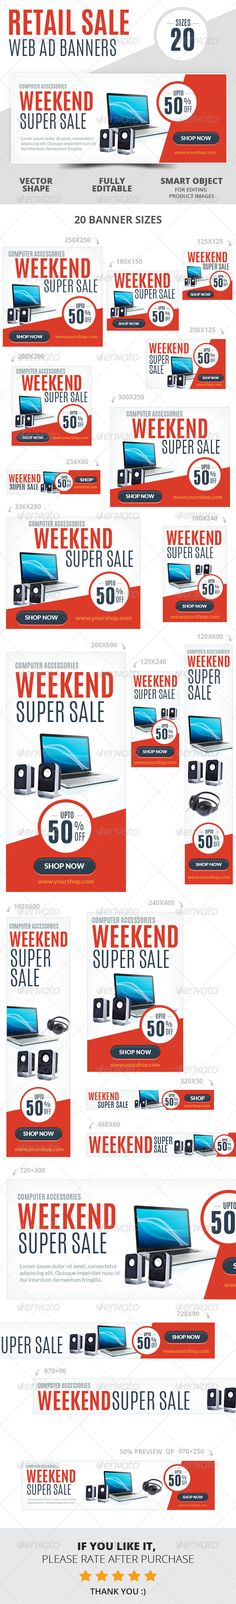 Weekend Super Sale Retail Web Ad Banners A set of Weekend Super Sale Retail Web Ad Banners is comes with 20 standard dimensions which also meet Google adwords banners sizes. It included all the layered psd file where you can easily change its text, color & shapes as per your requirements.